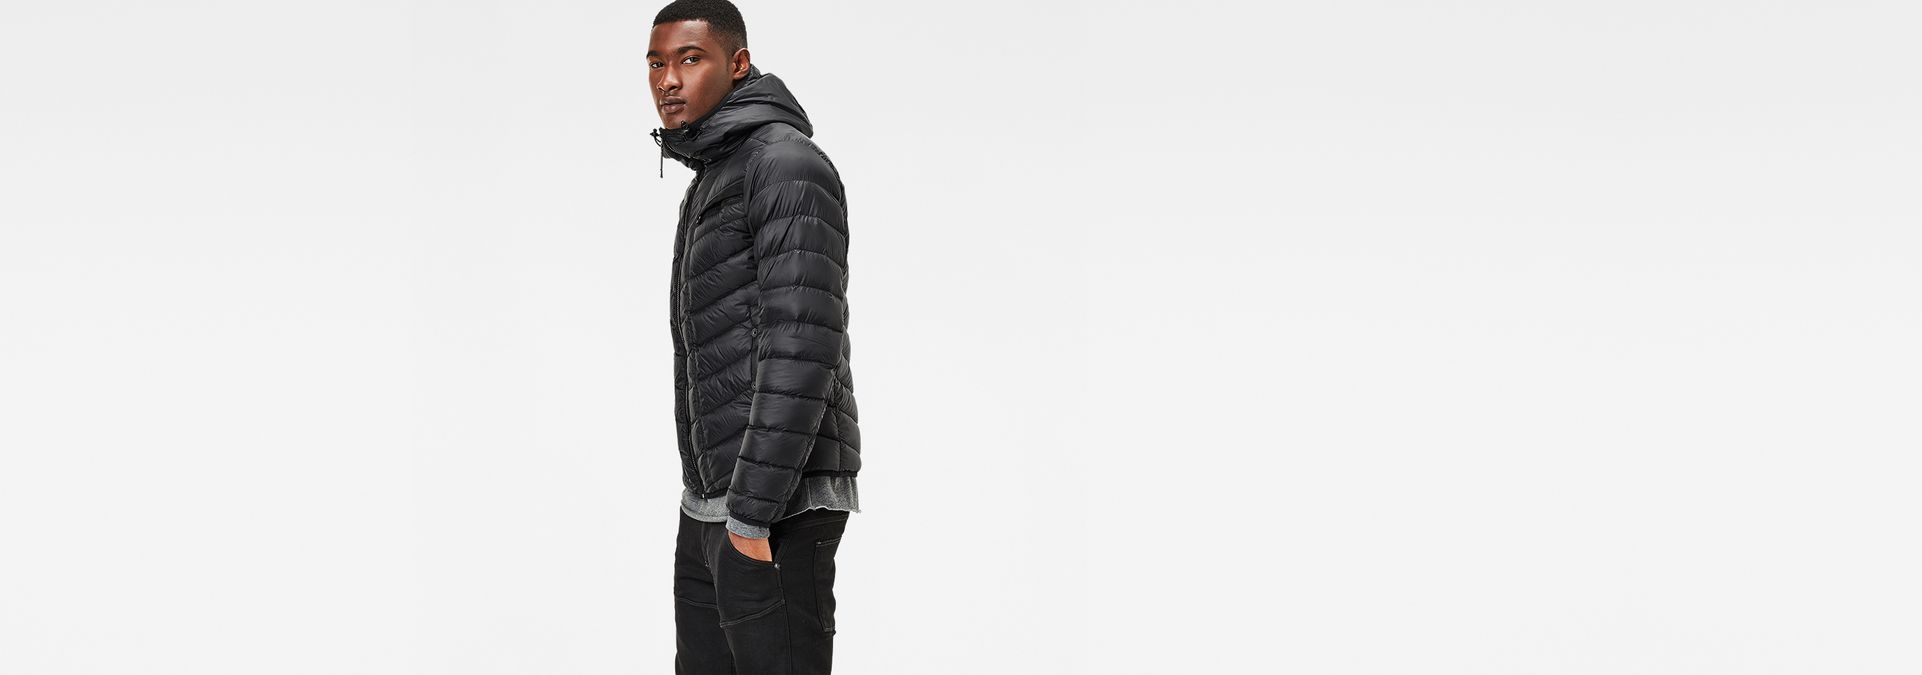 7986031759ca0 ... G-Star RAW® Attacc Solid Hooded Down Jacket Black model side ...